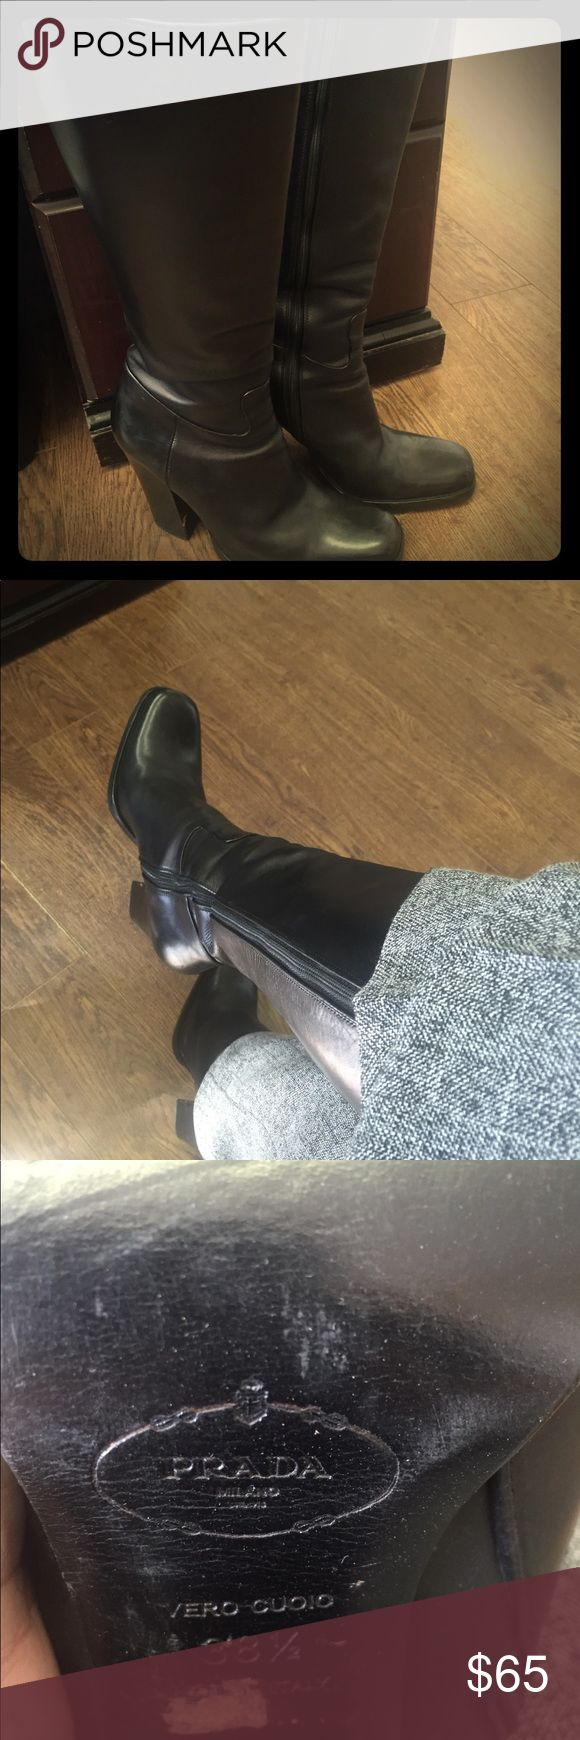 Prada Boots Black Prada leather boots.  4 in heels.   Size 8. Good condition. Small scuff on right heel.  Narrow fit on calves.  Fits tight. Prada Shoes Heeled Boots